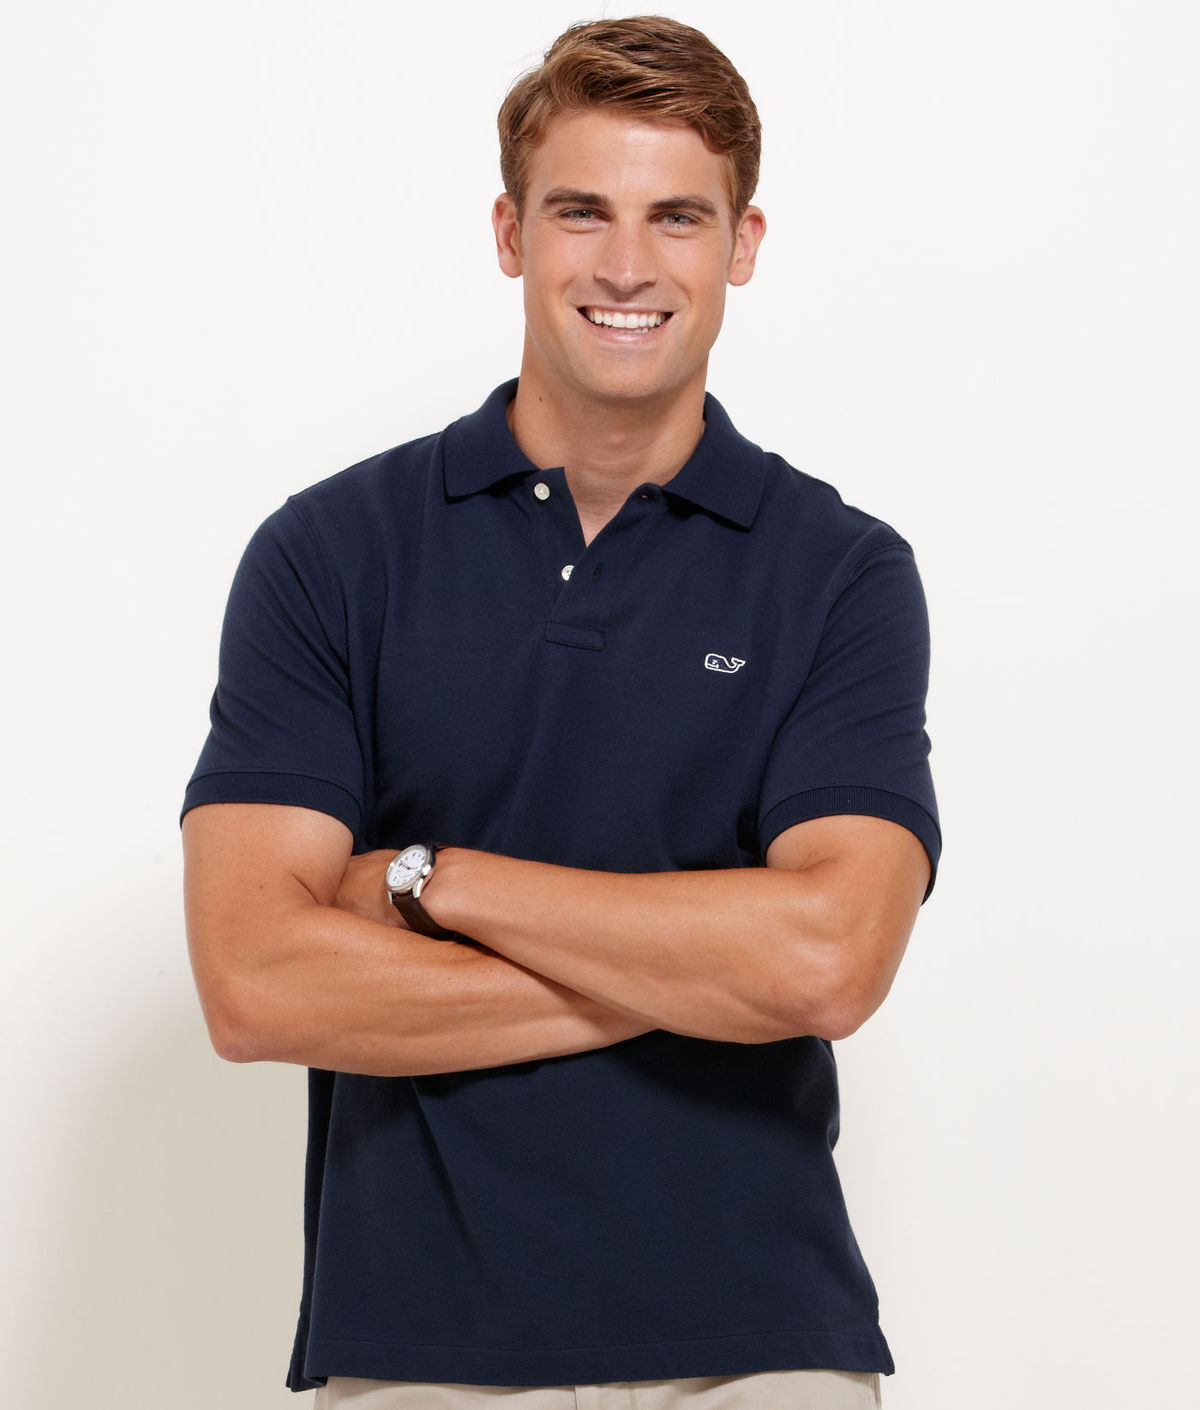 Preppy Daily Preppy Looks For Guys